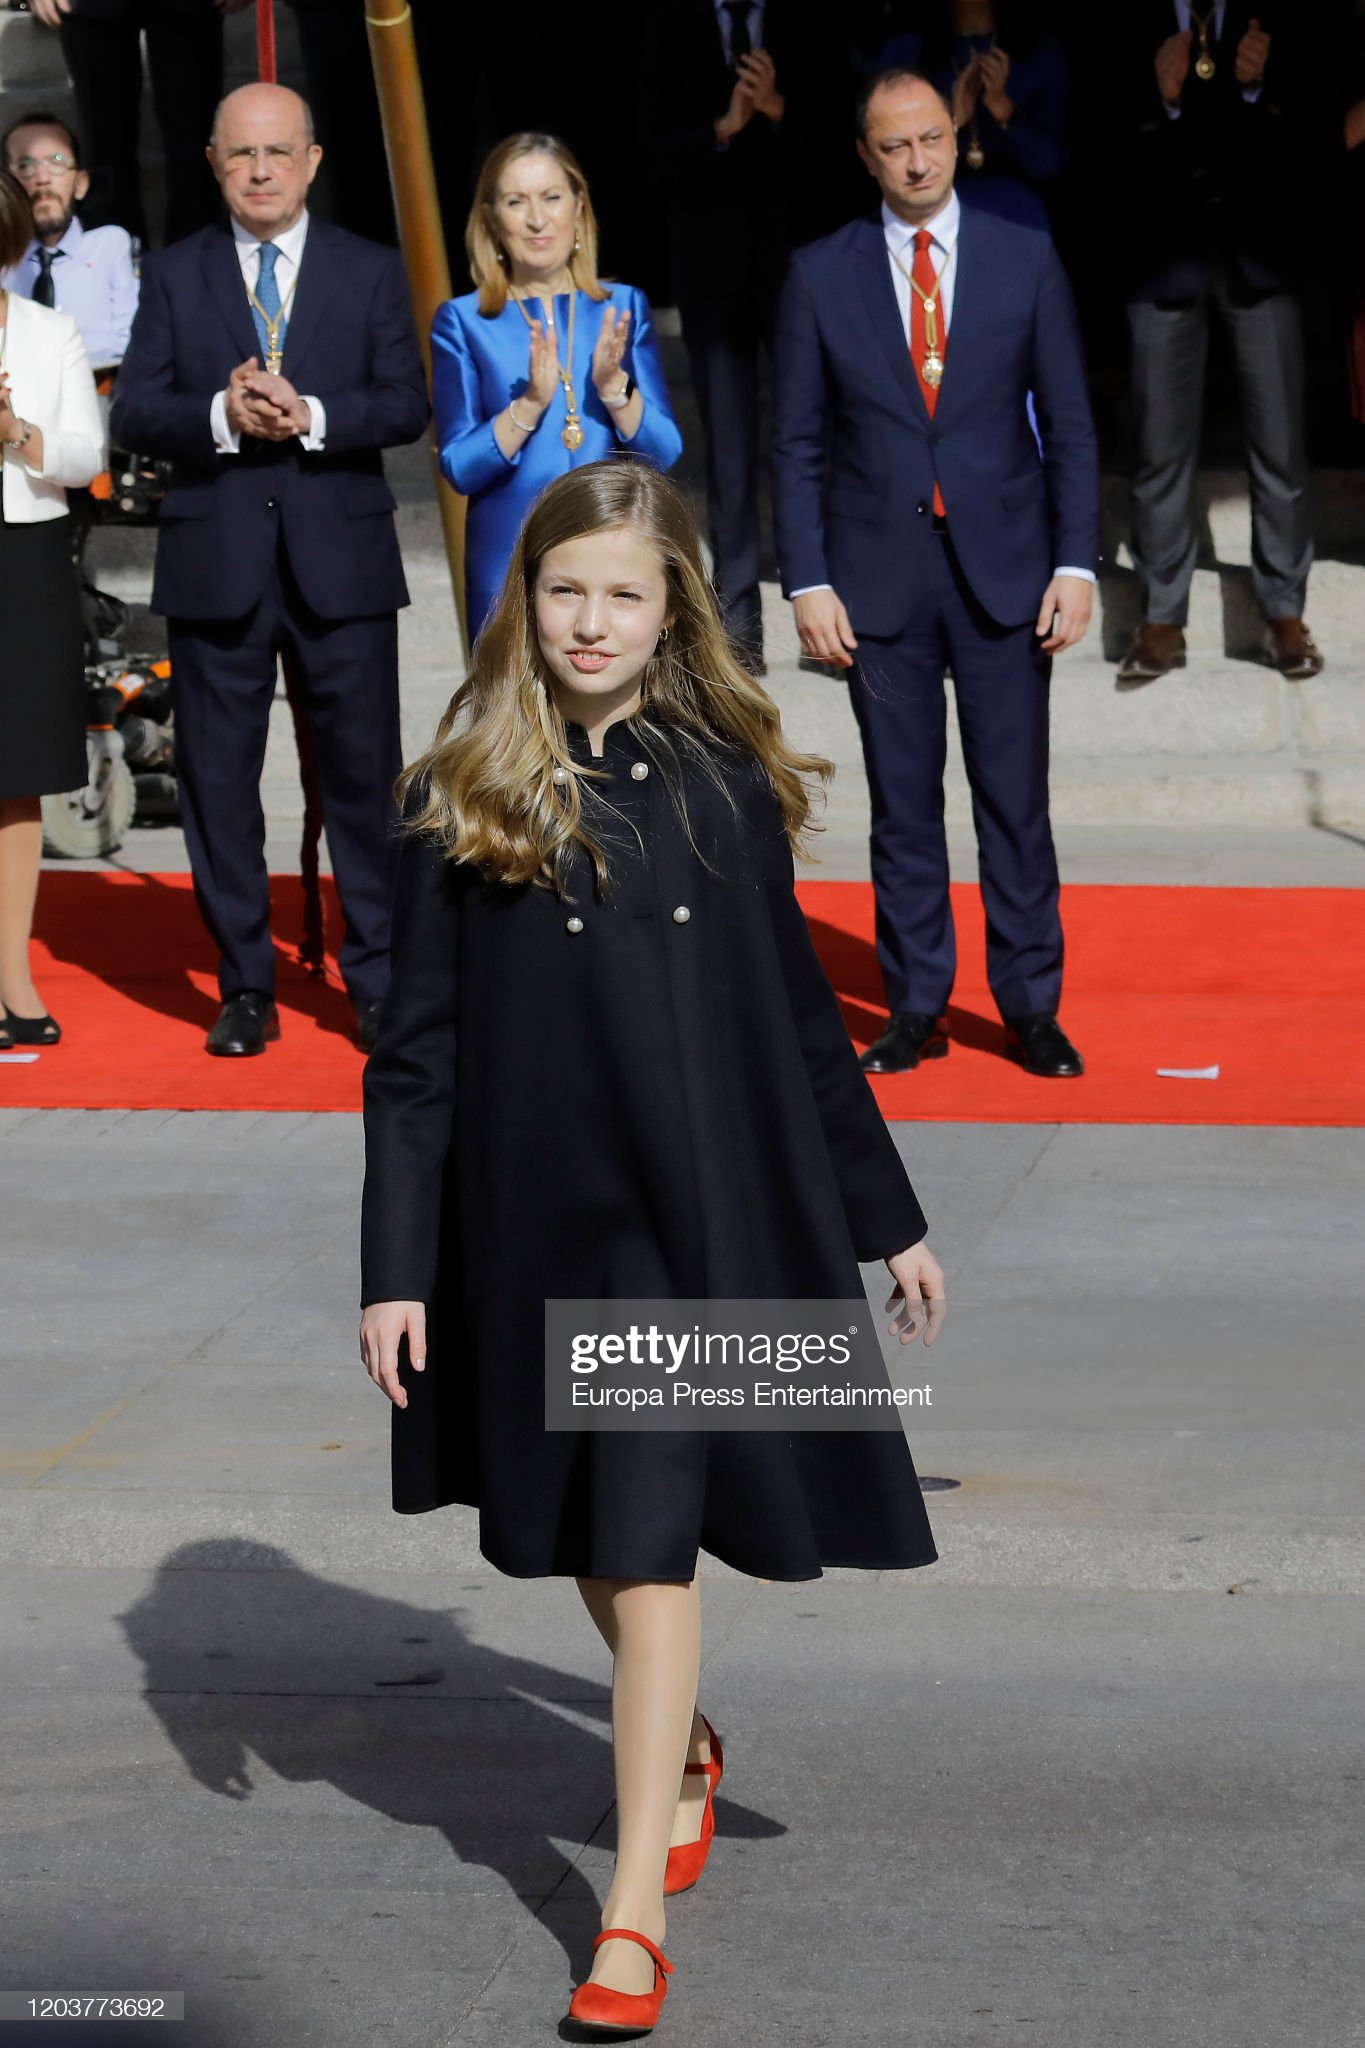 https://media.gettyimages.com/photos/princess-leonor-of-spain-attends-the-solemn-opening-of-the-14th-at-picture-id1203773692?s=2048x2048